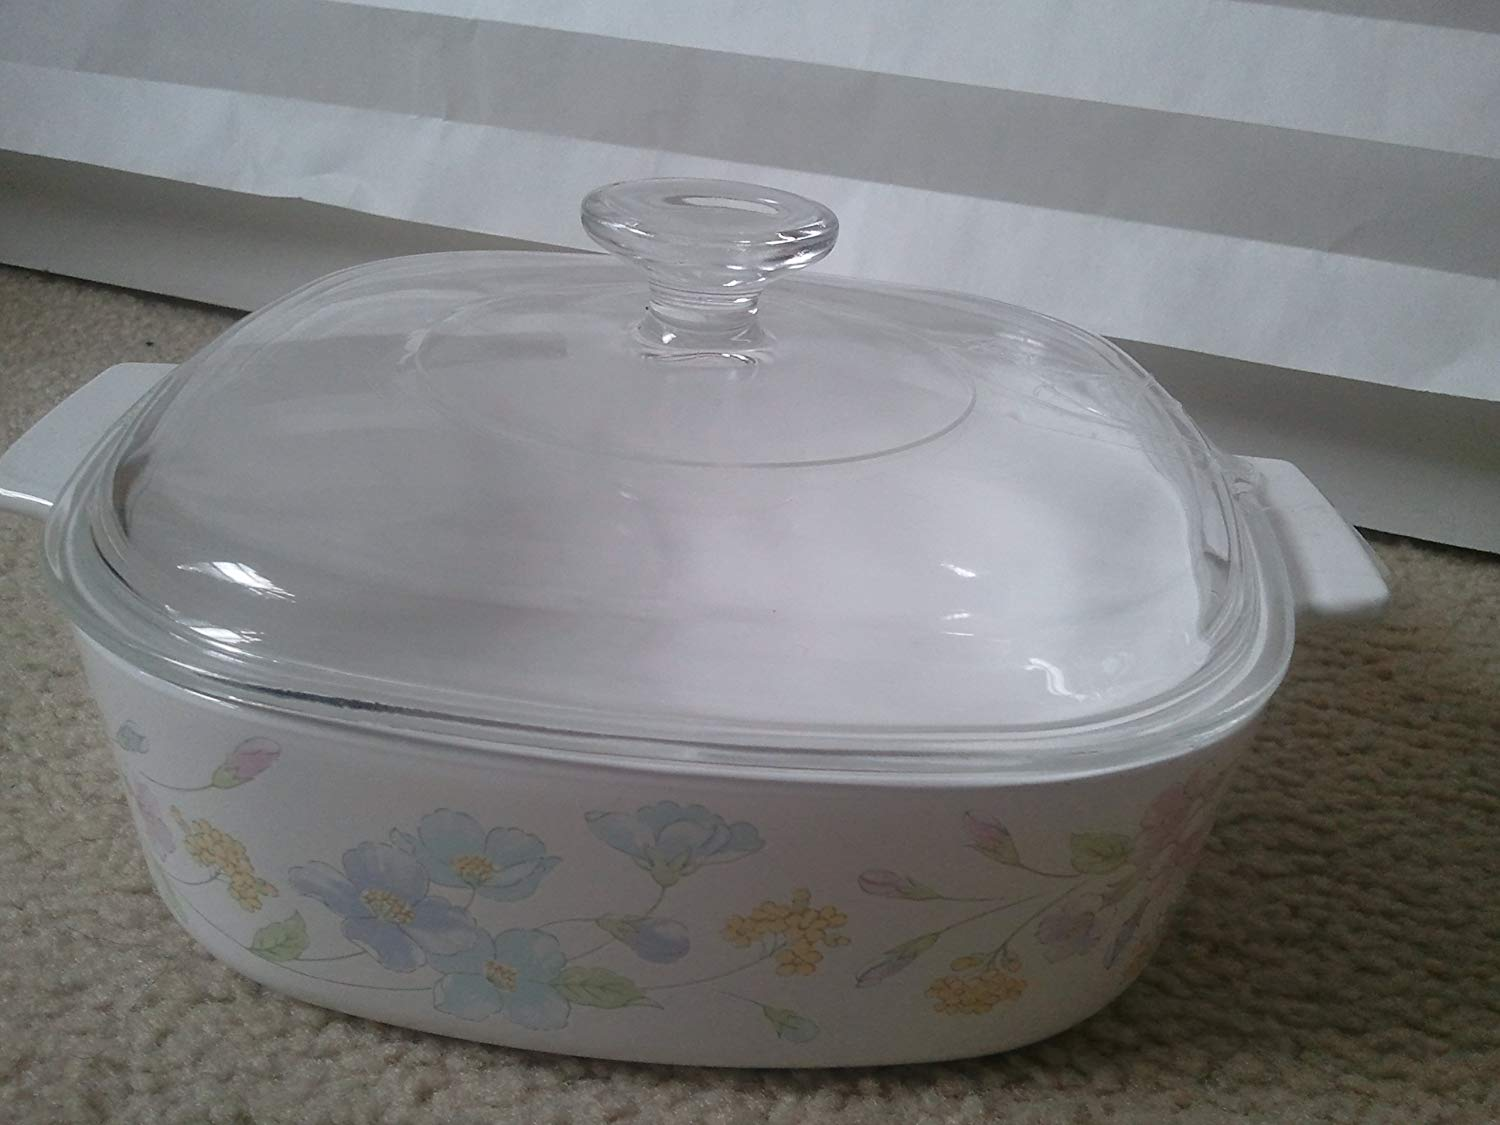 Vintage Corning Ware Pastel Bouquet Flowers Casserole Dish 2 Liter with Lid